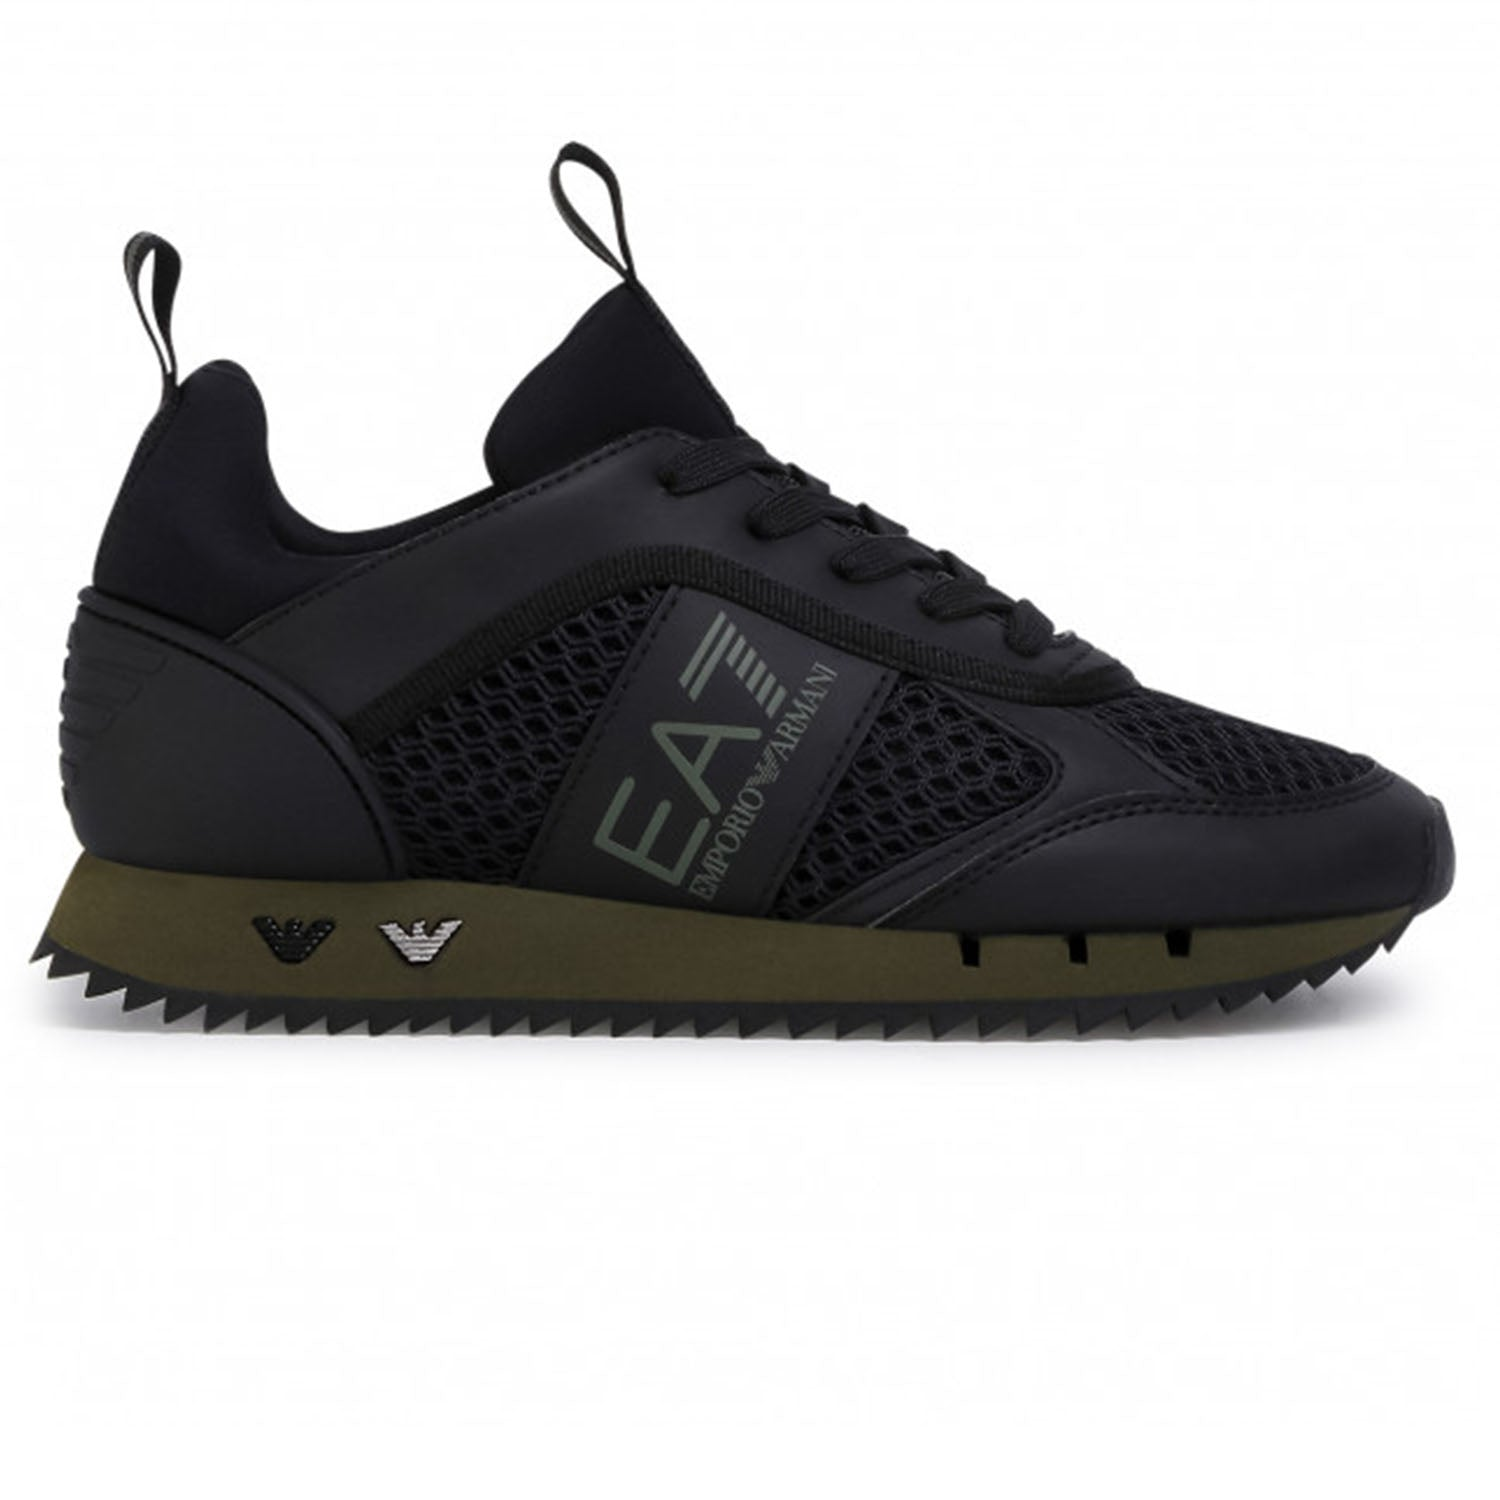 EA7 Black/Khaki Trainers